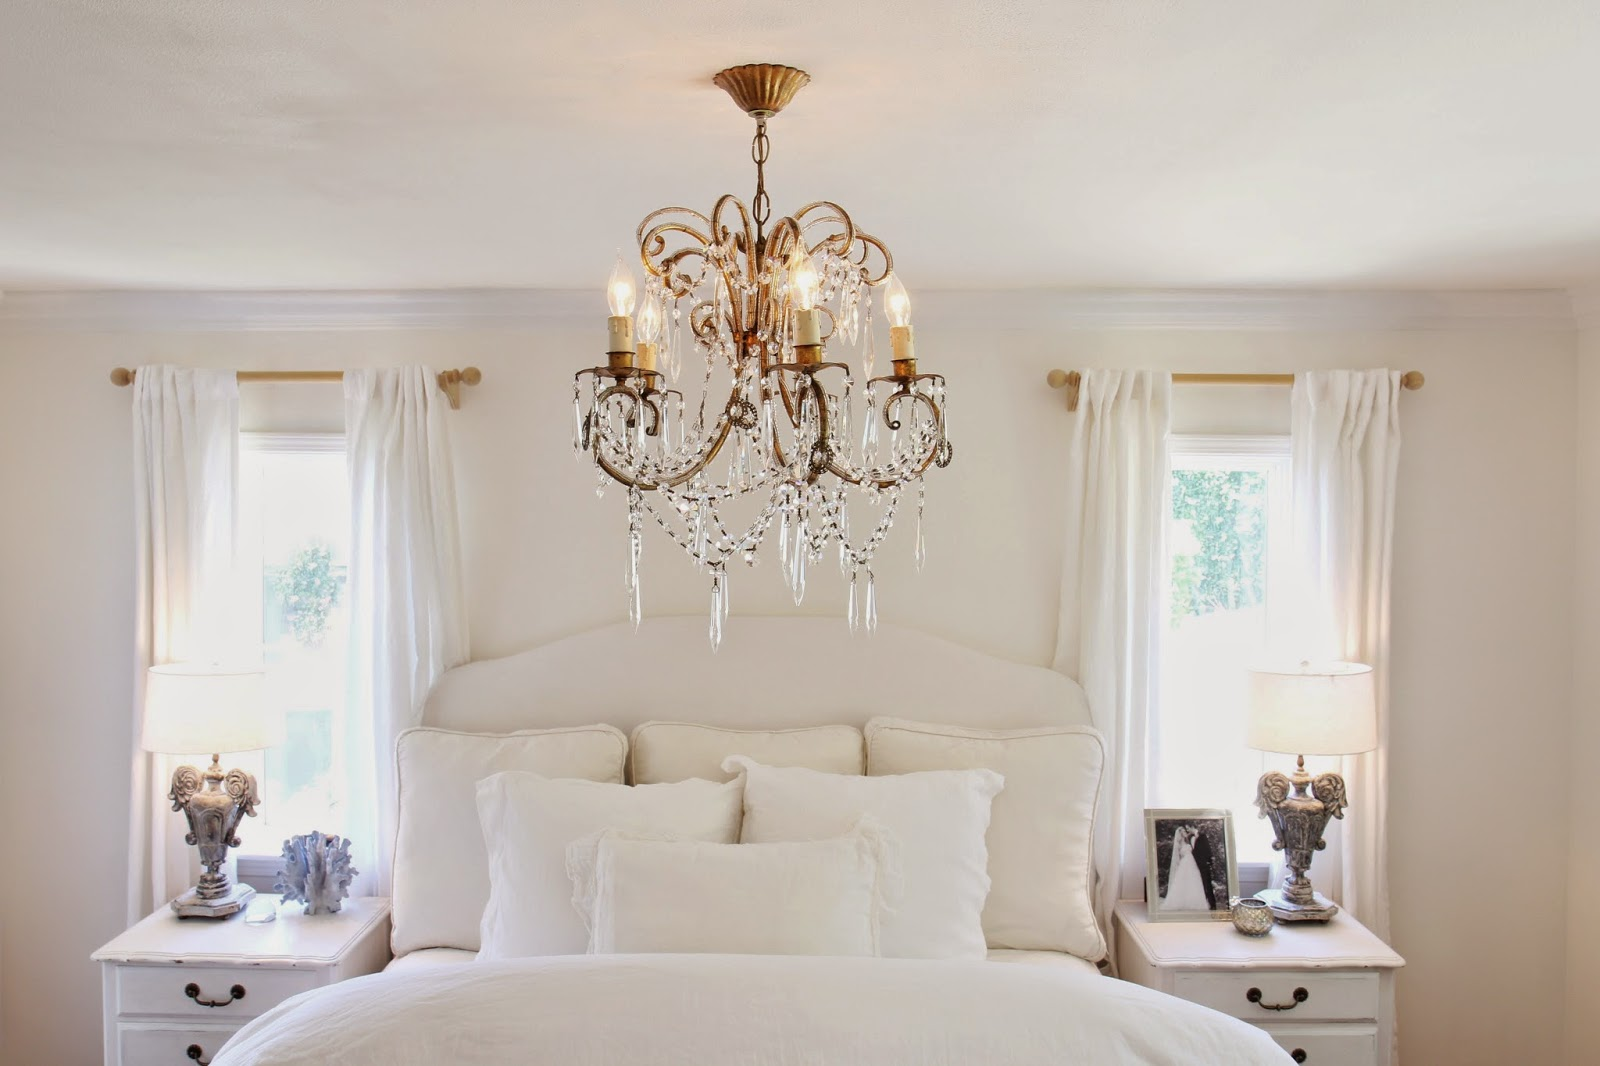 nora 39 s nest a chandelier for the master bedroom. Black Bedroom Furniture Sets. Home Design Ideas